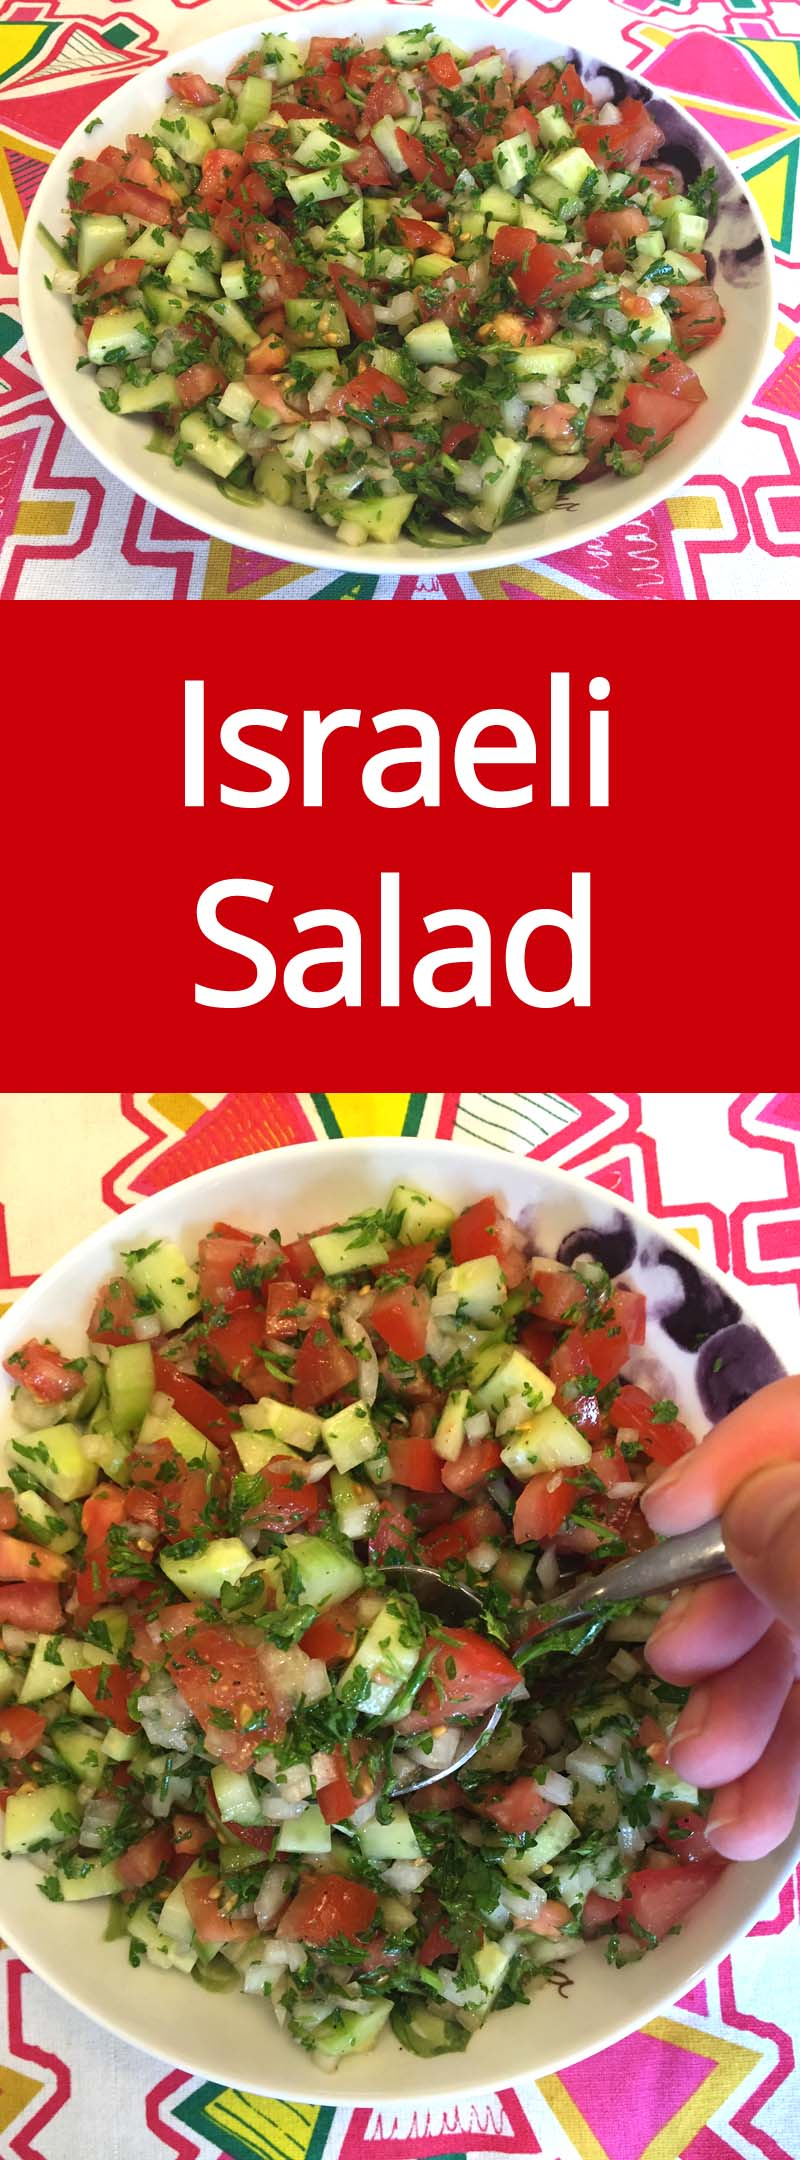 Israeli Salad Recipe With Tomatoes, Cucumber, Onions and Parsley - crunchy, healthy and easy to make! Everyone loves this salad! | MelanieCooks.com